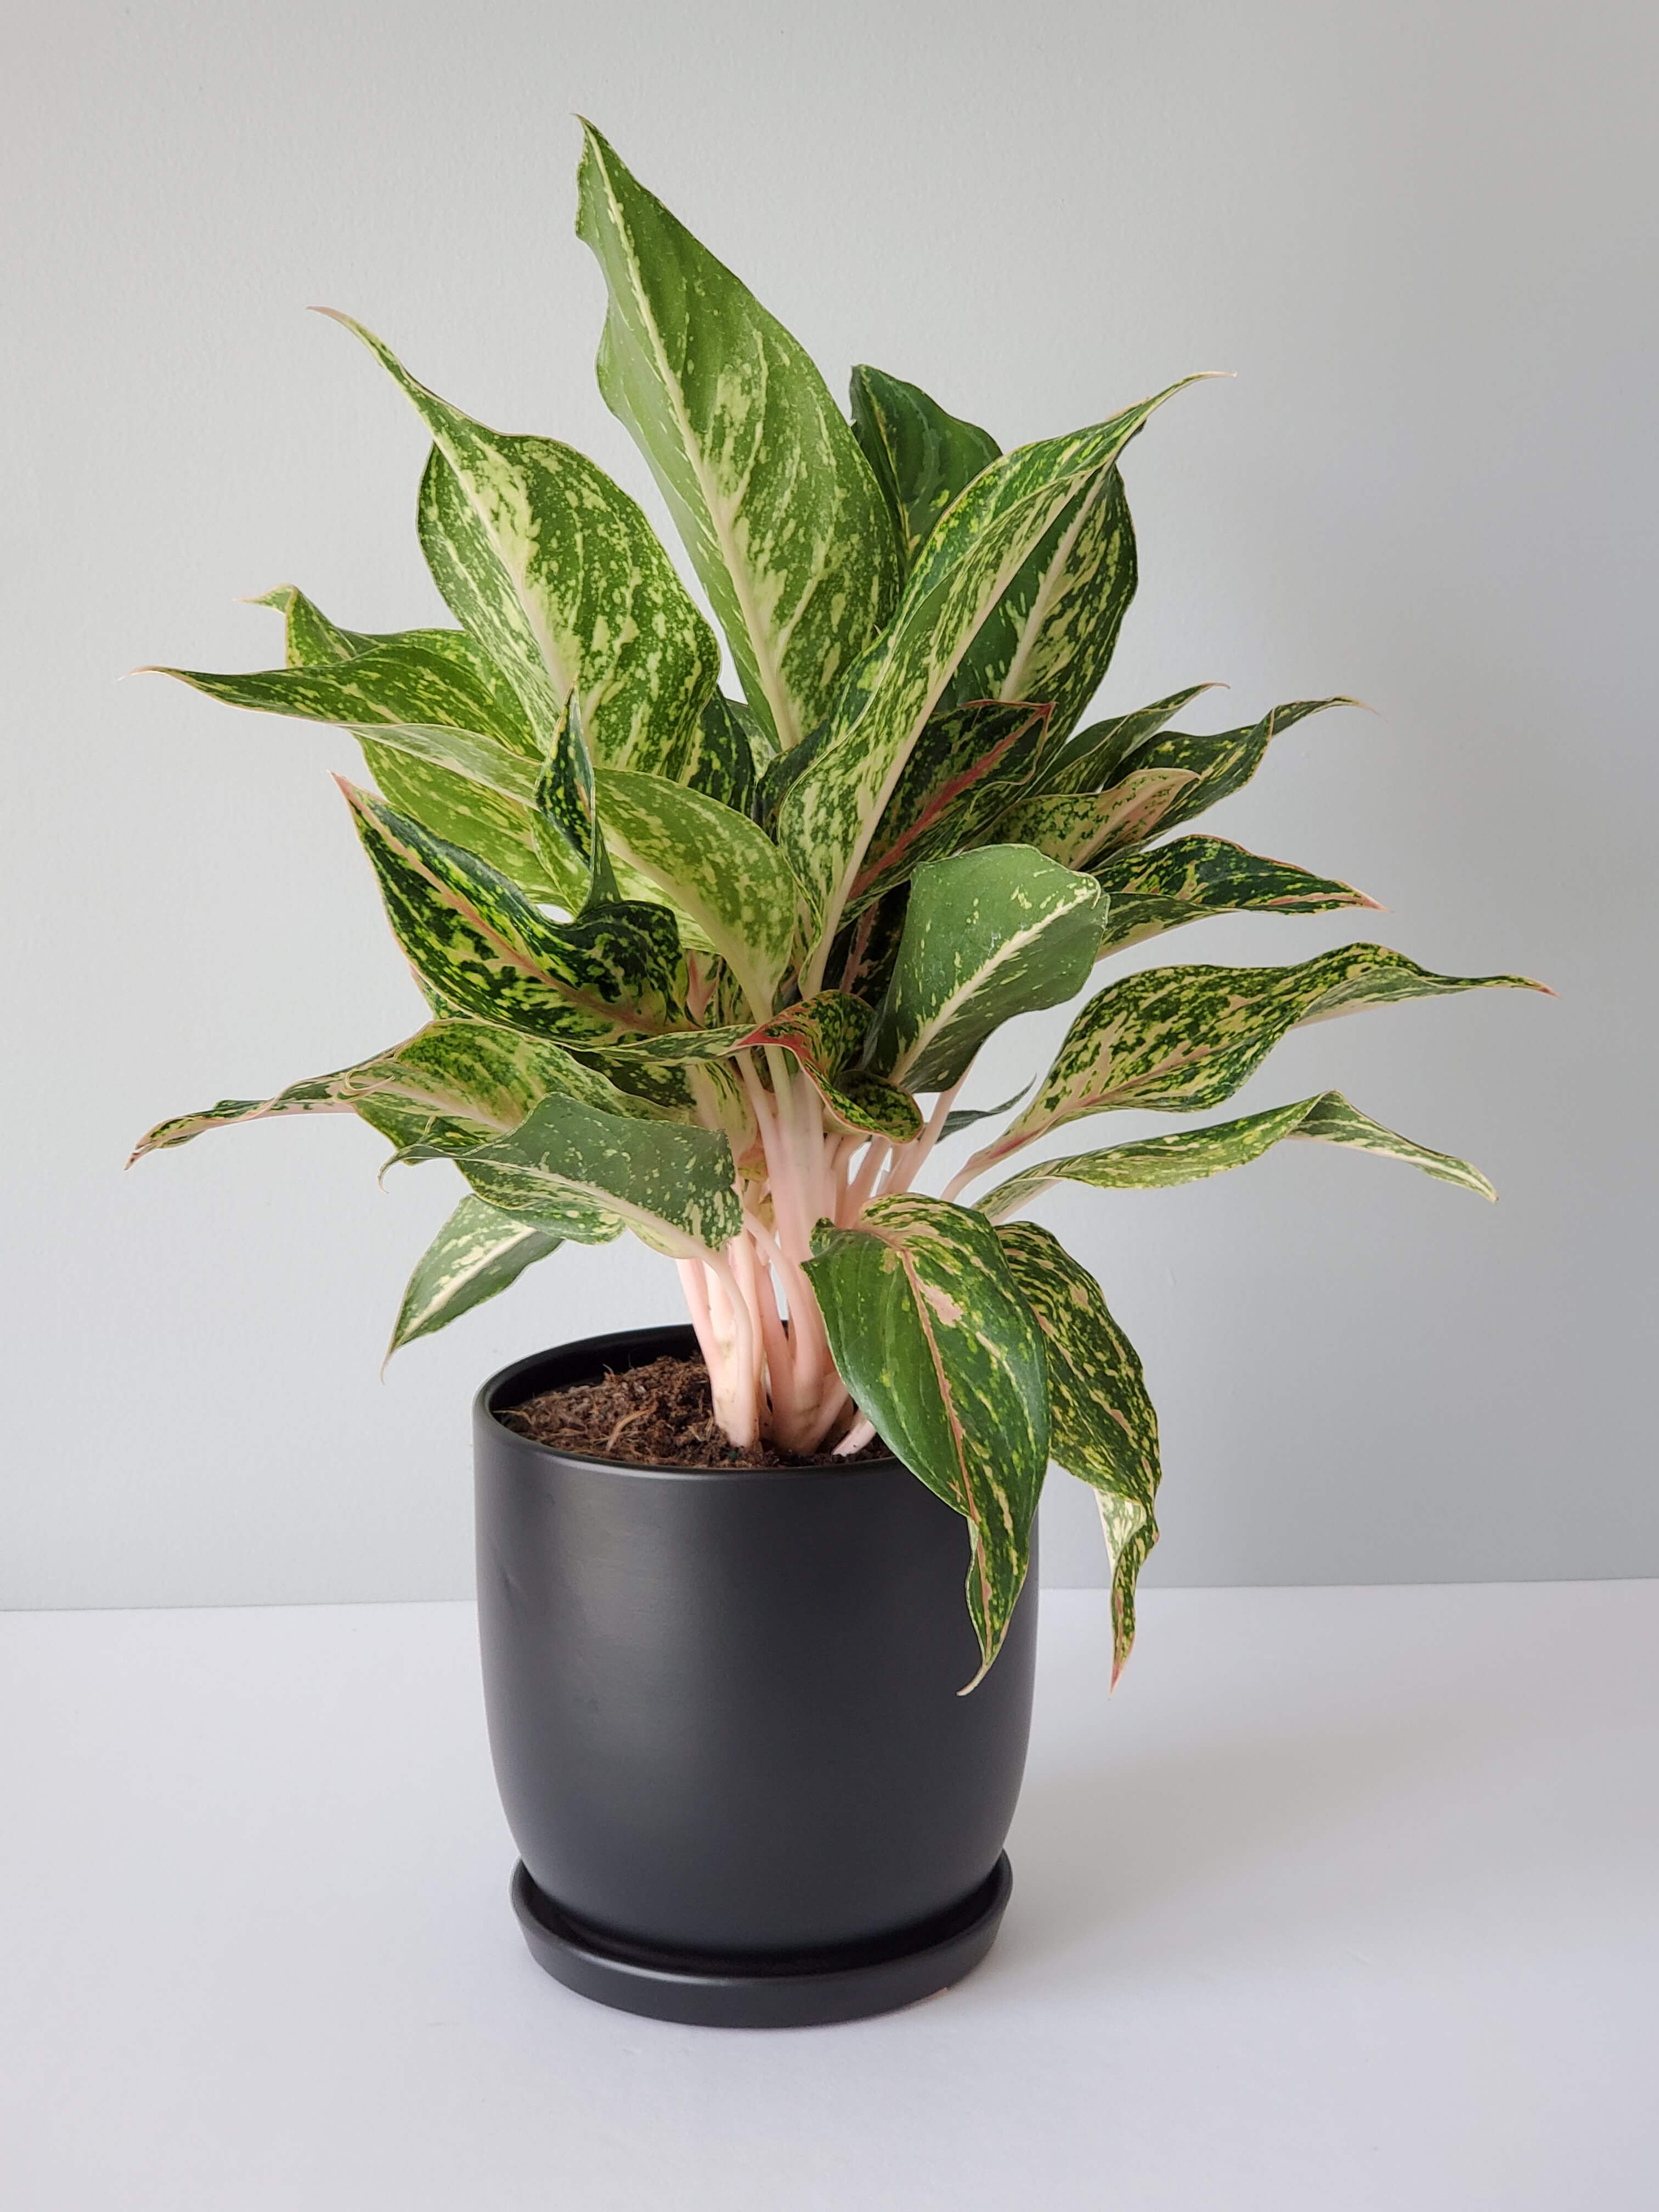 Aglaonema Sparkling Sarah Houseplant Buy Online chinese evergreen plant